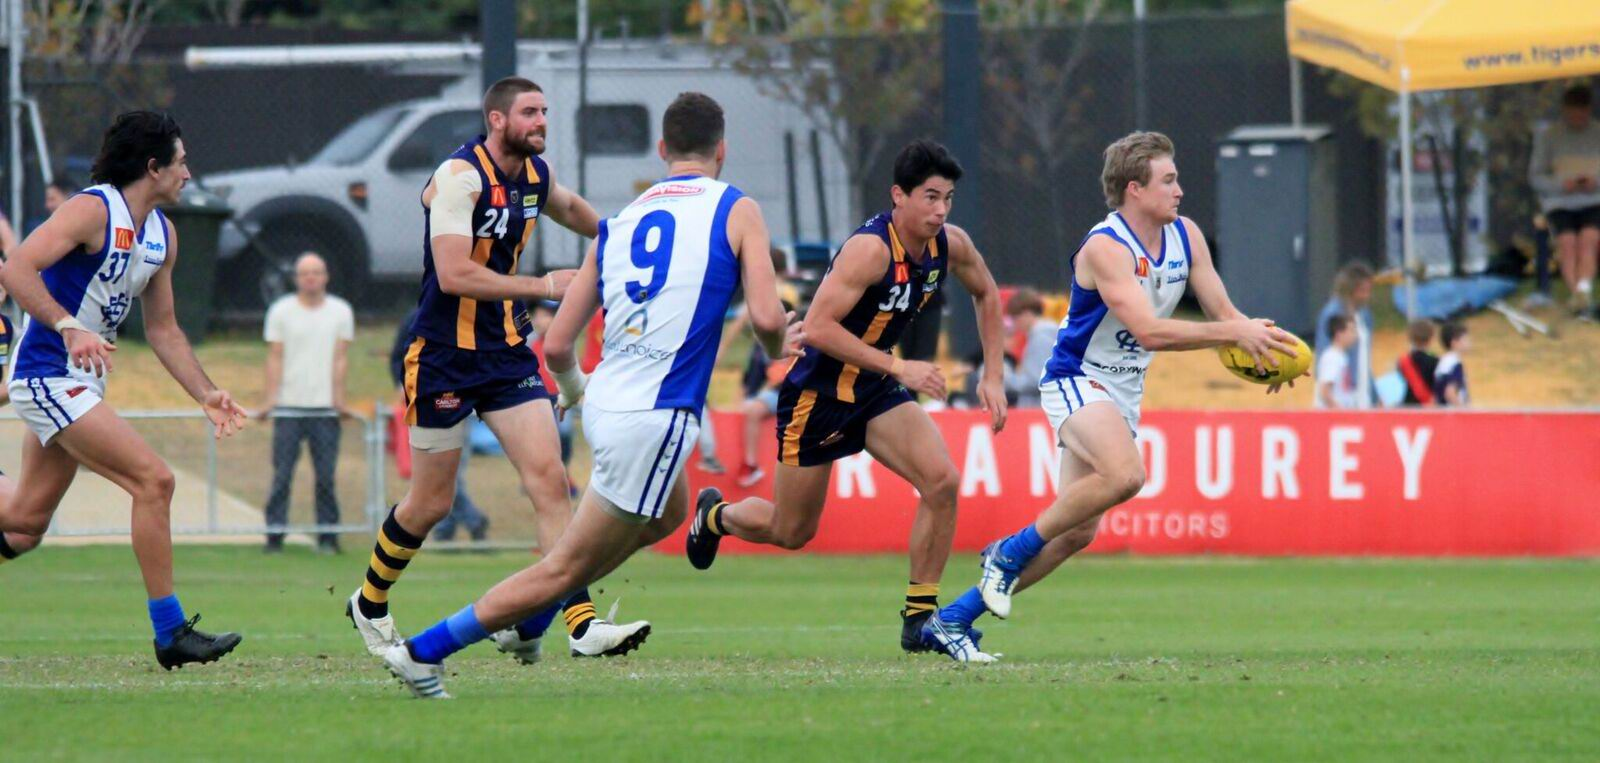 East Fremantle will tackle Perth and South Fremantle will take on West Perth on Saturday. Picture: Phil Elliott/ PixEll Photography